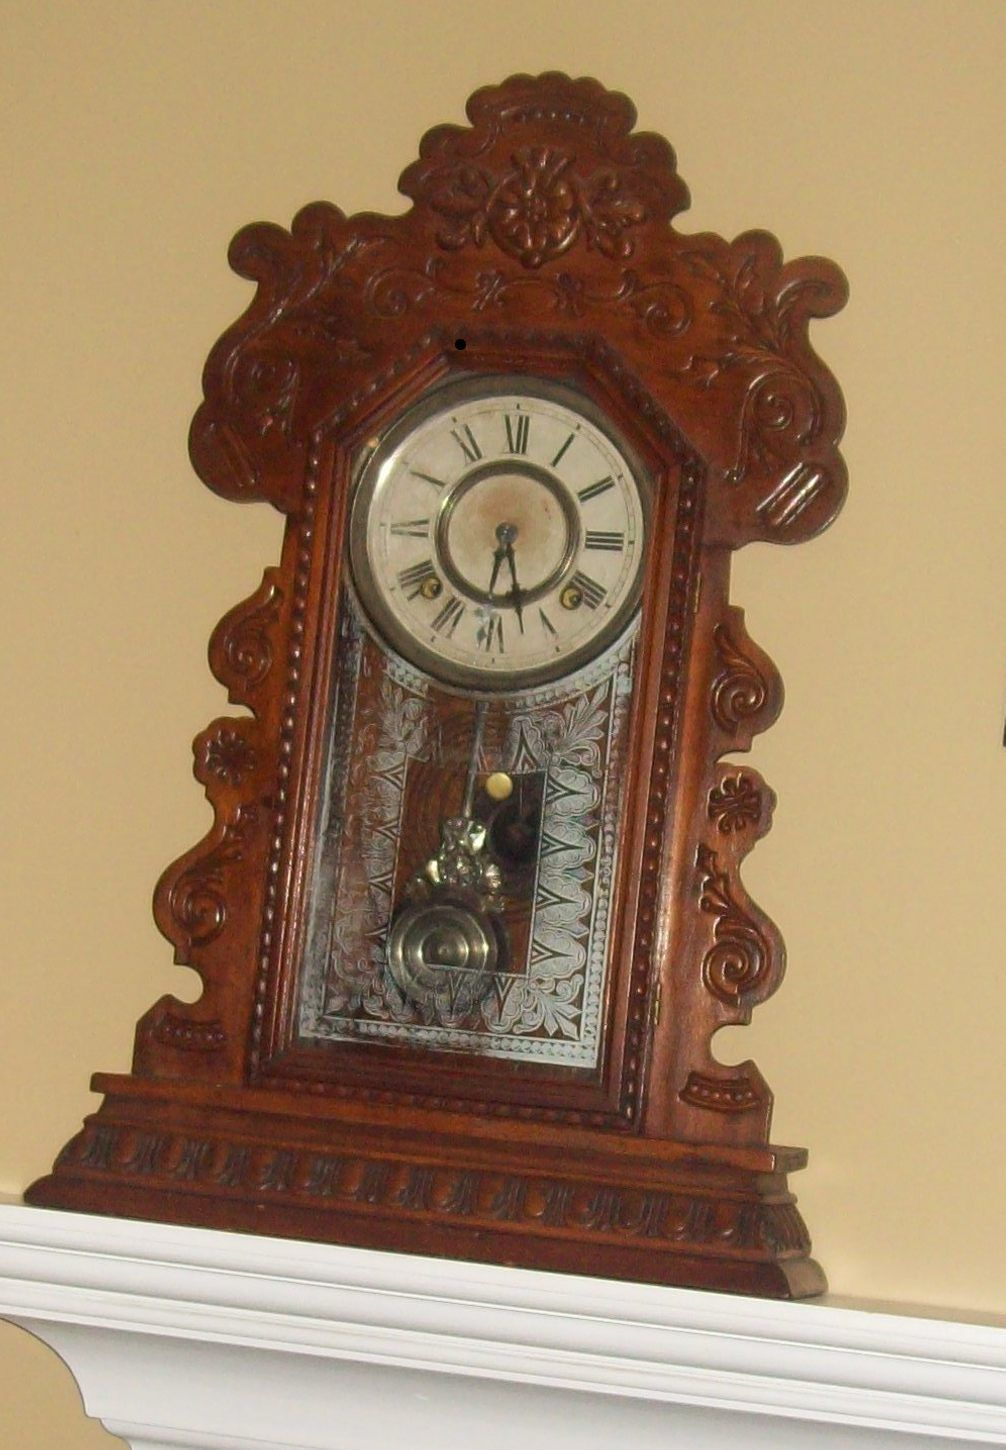 Antique Pioneer Clock Late 1800 To Early 1900 Been In The Family For Over 100 Years Antique Wall Clock Clock Old Clocks